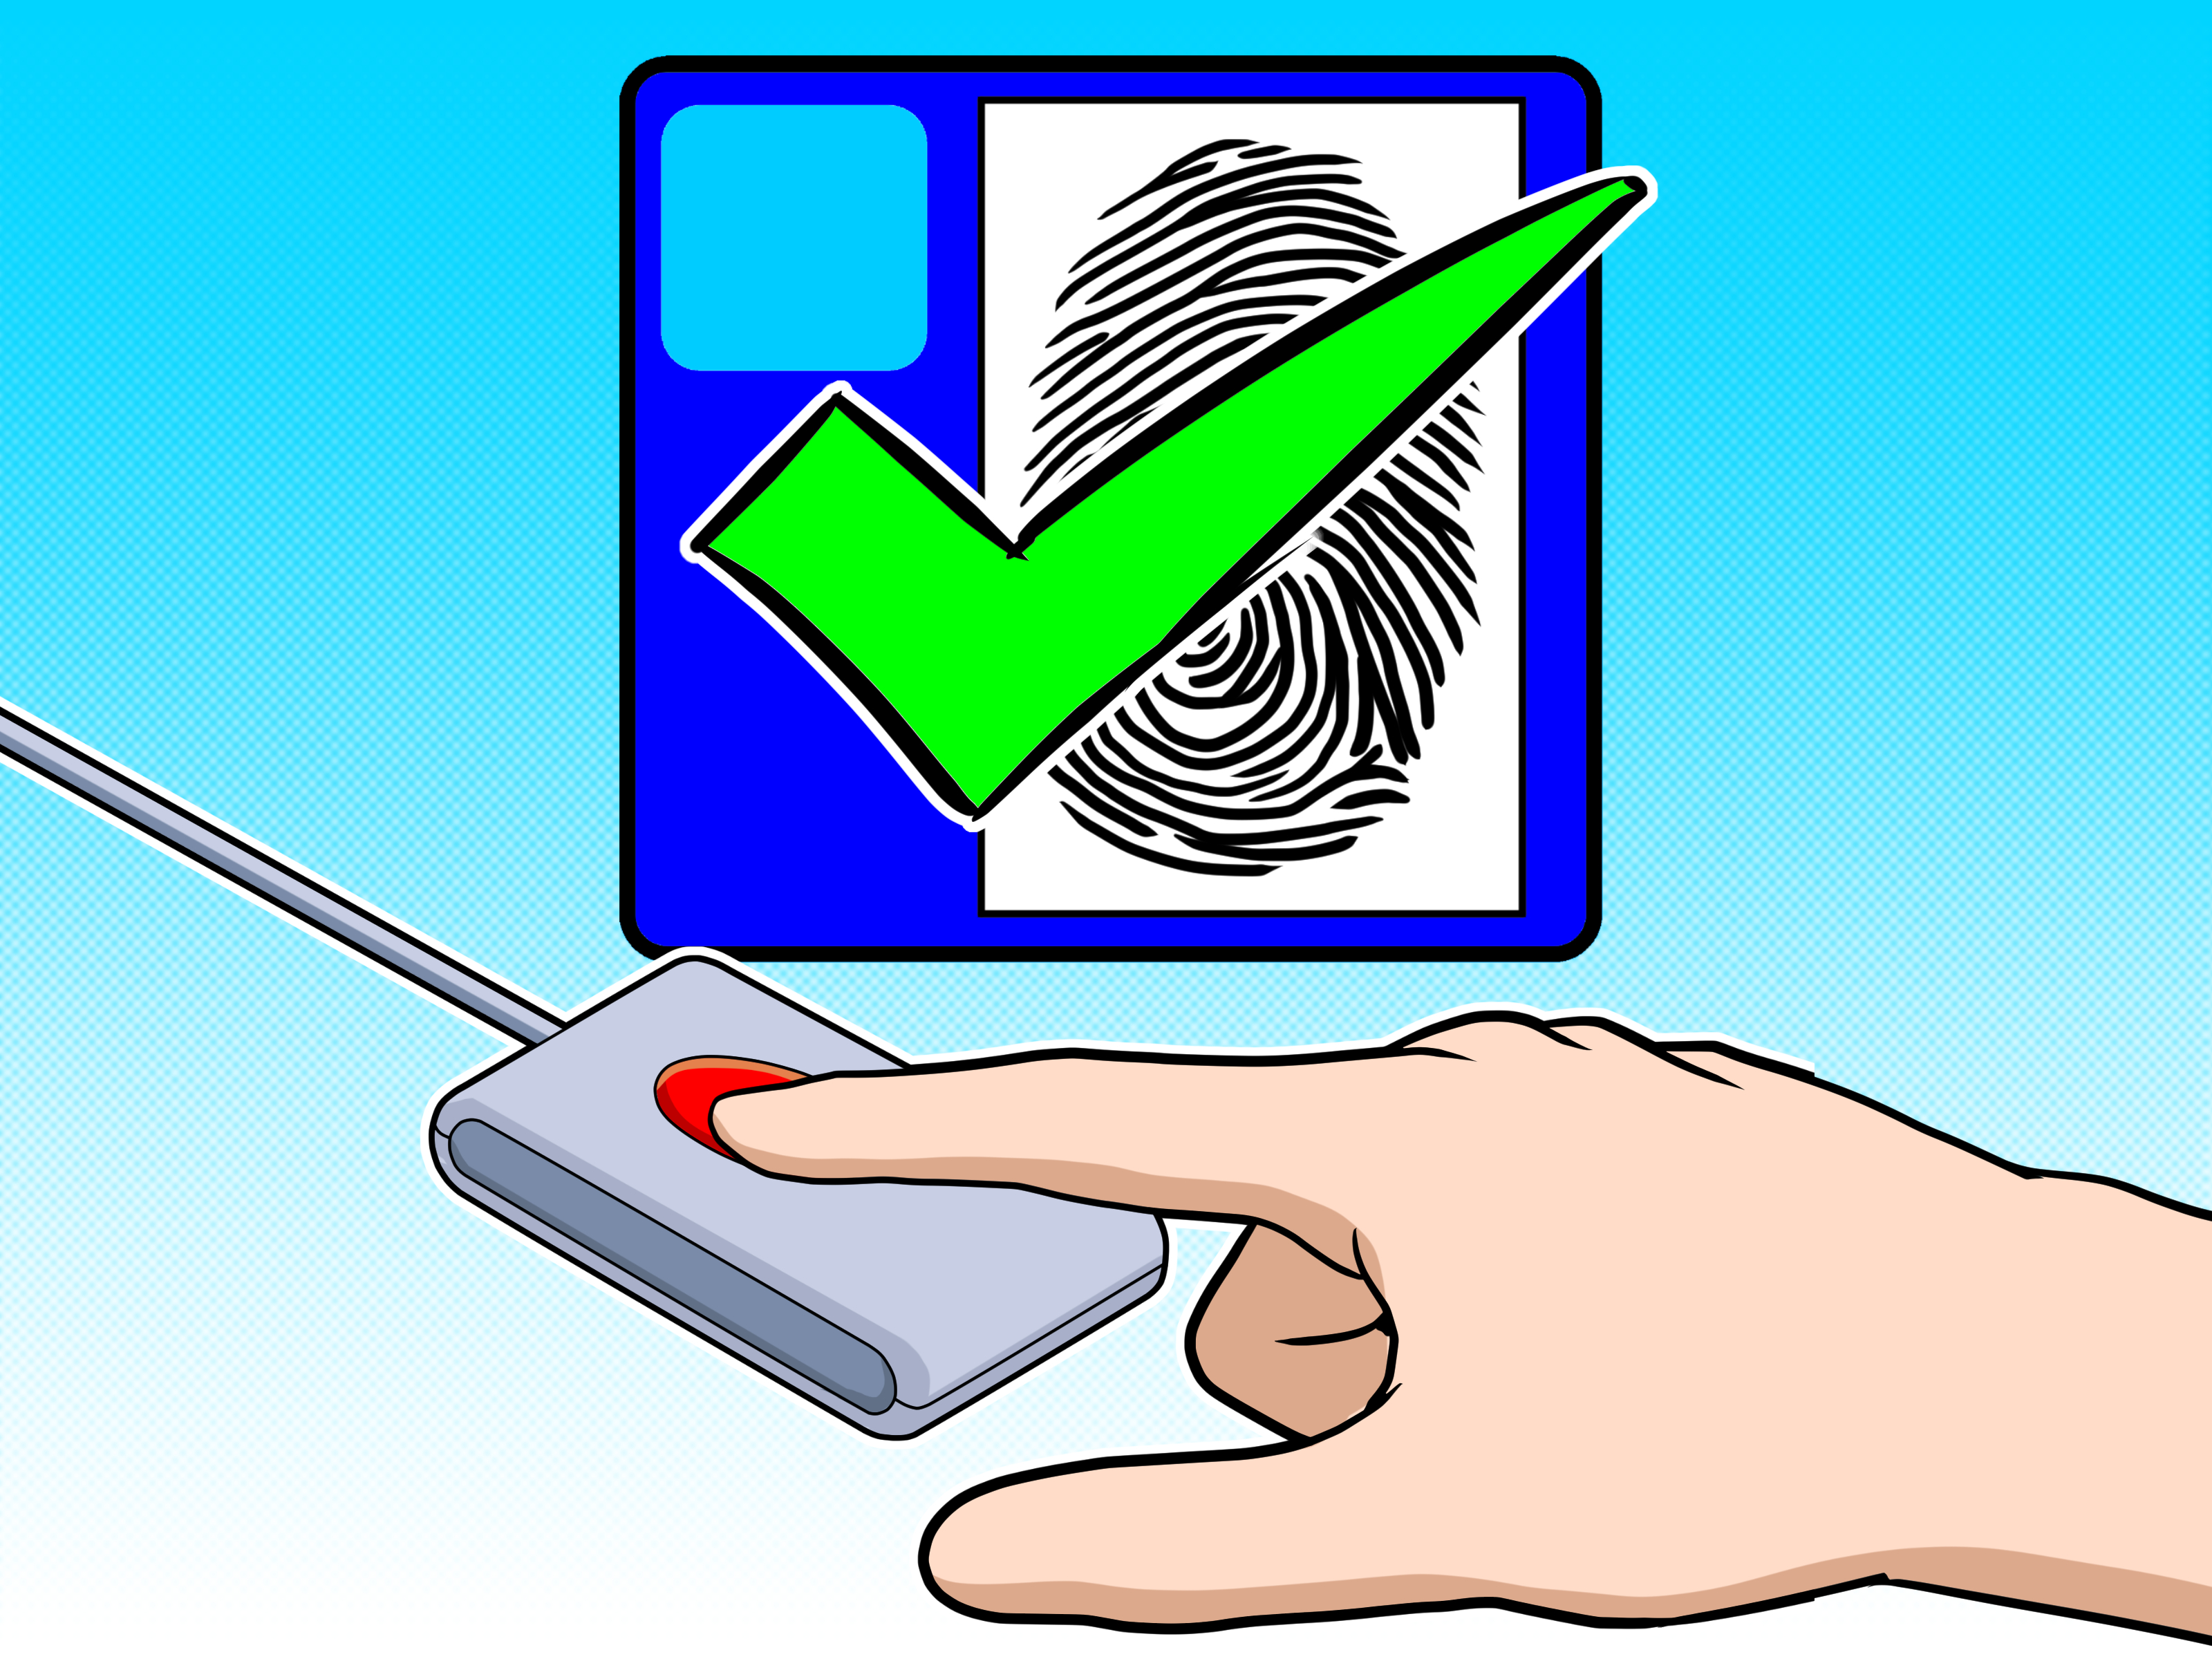 3200x2400 How To Install A Fingerprint Reader 9 Steps (With Pictures)